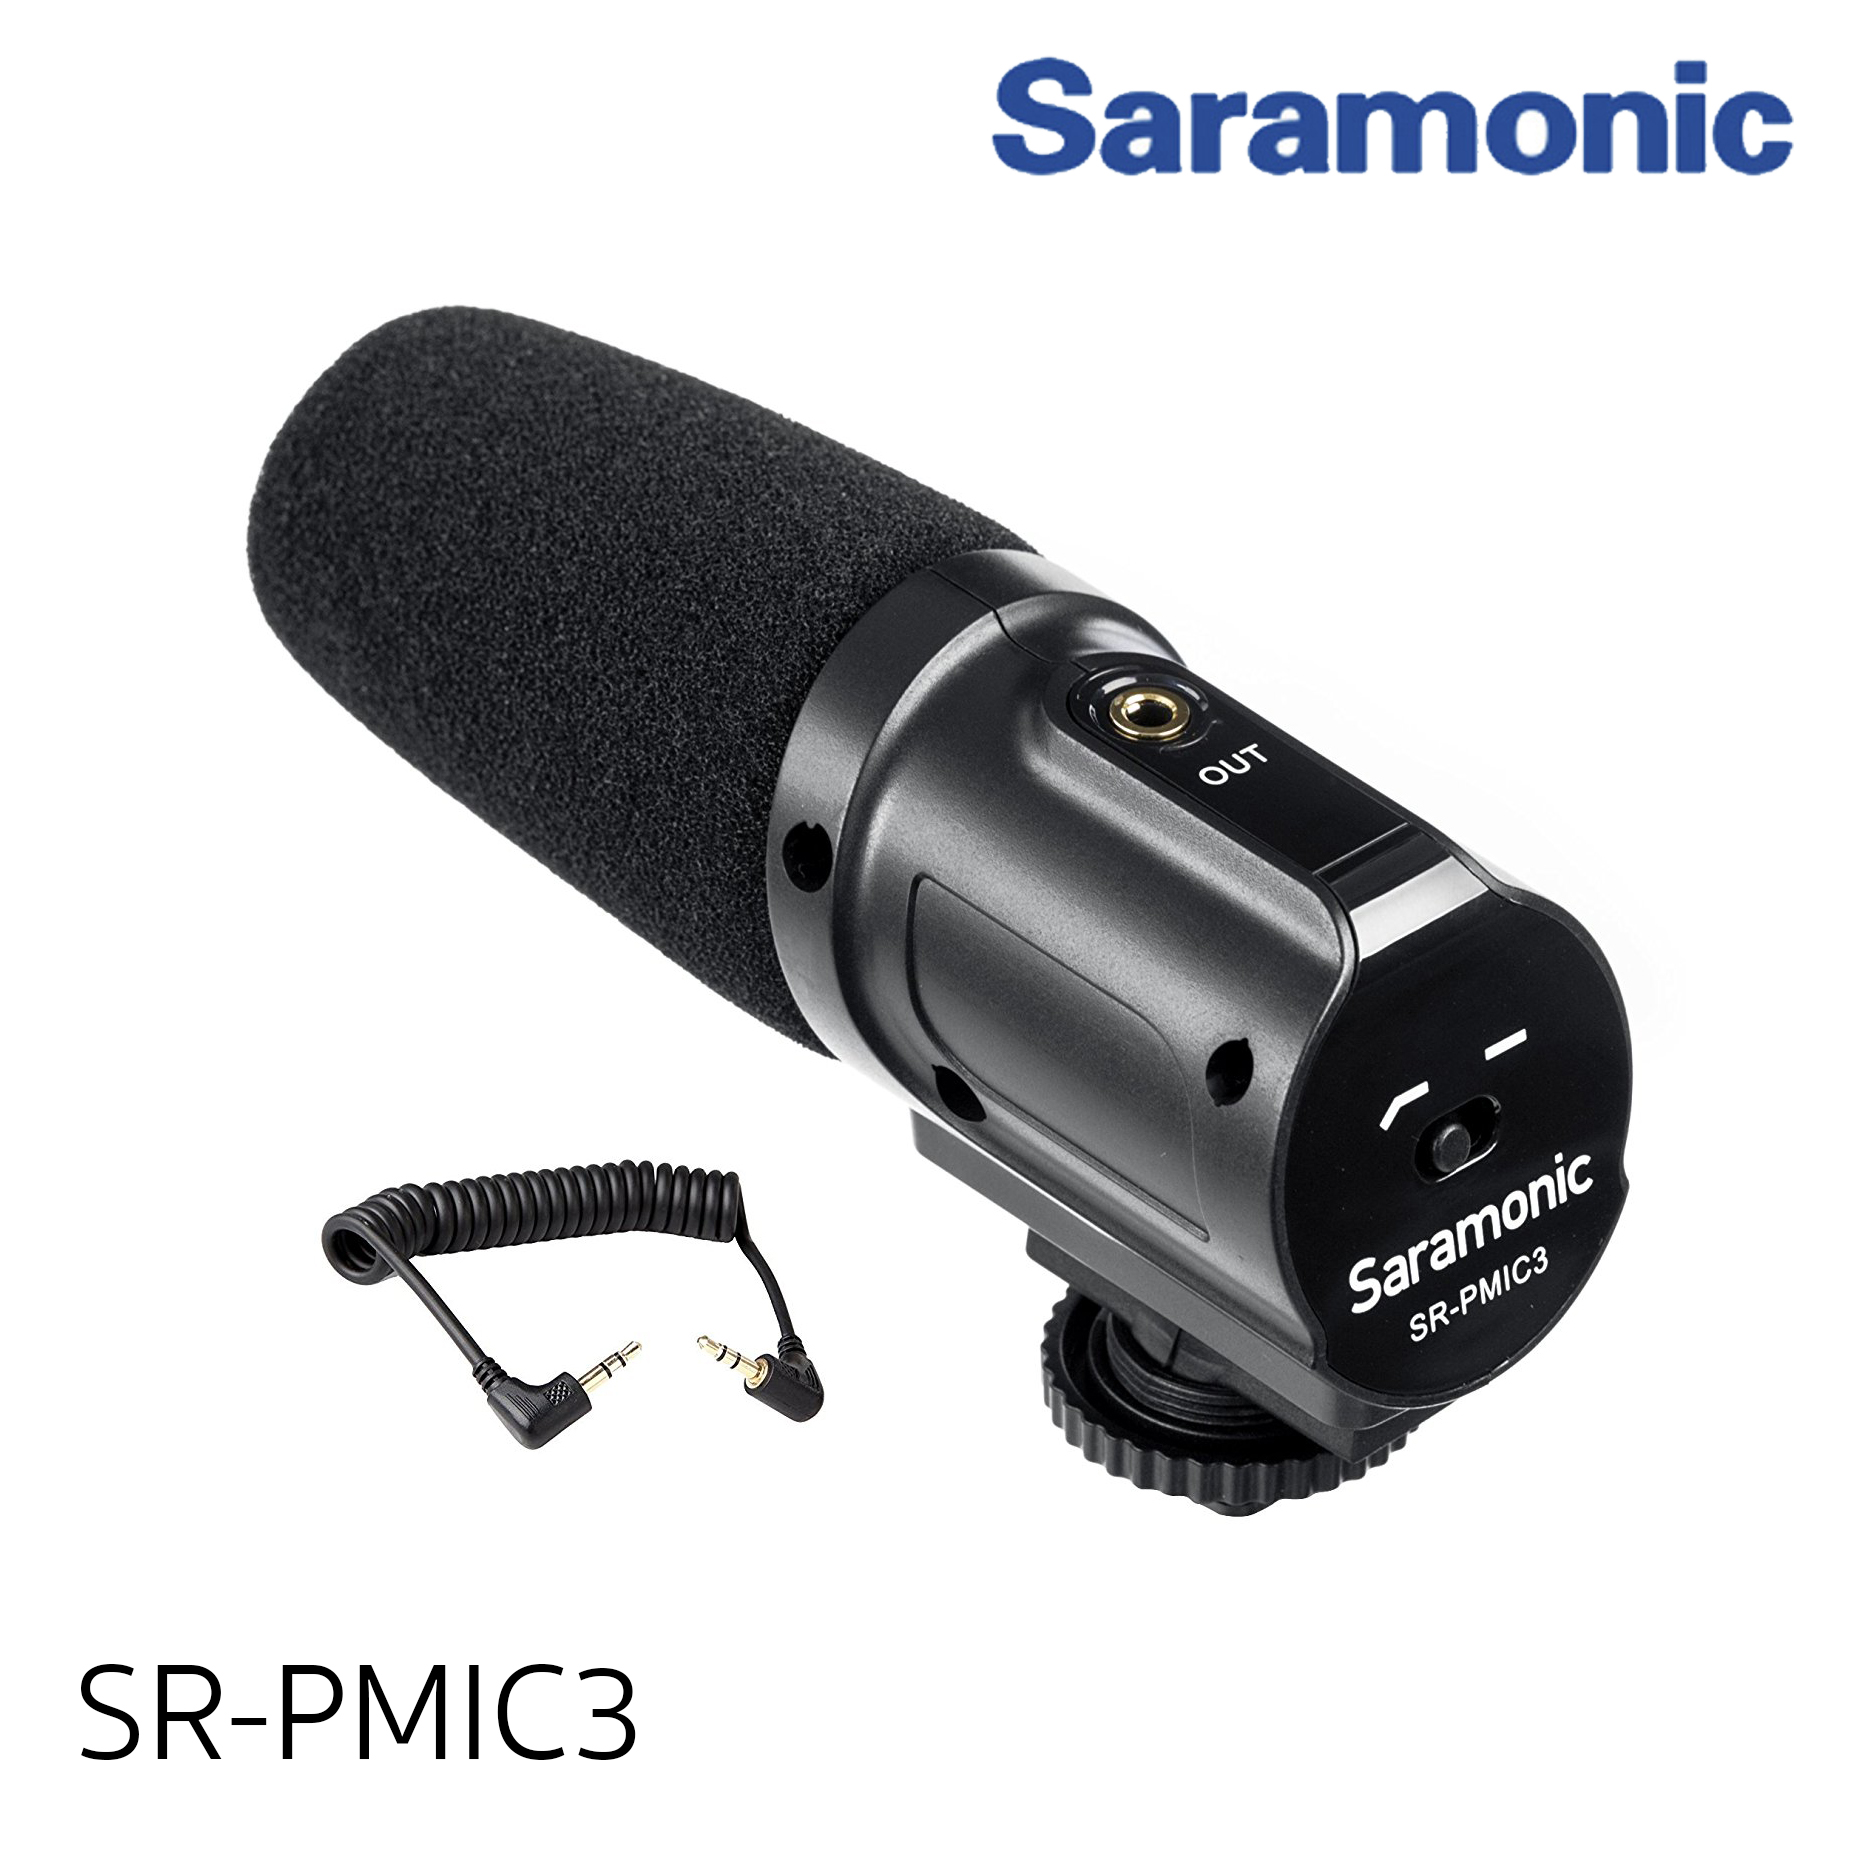 Saramonic SR-SR-PMIC3 Surround Recording Microphone with Integrated Shockmount, Low-Cut Filter & Battery-Free Operation for DSLR Cameras & Camcorders